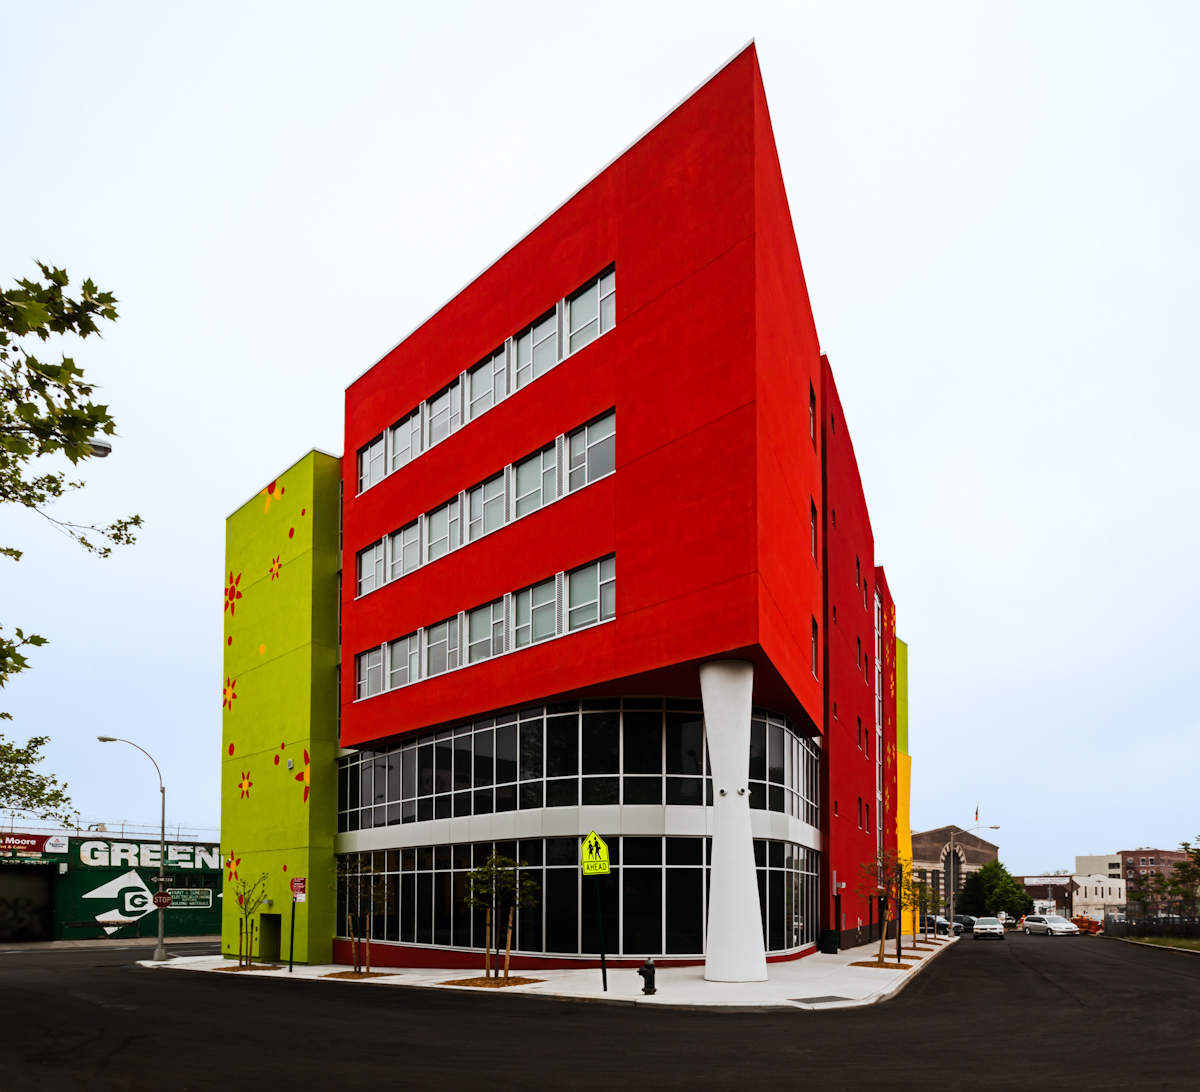 050915_Partners-for-Architecture-South-Bronx-Charter-School_4327-as-Smart-Object-1